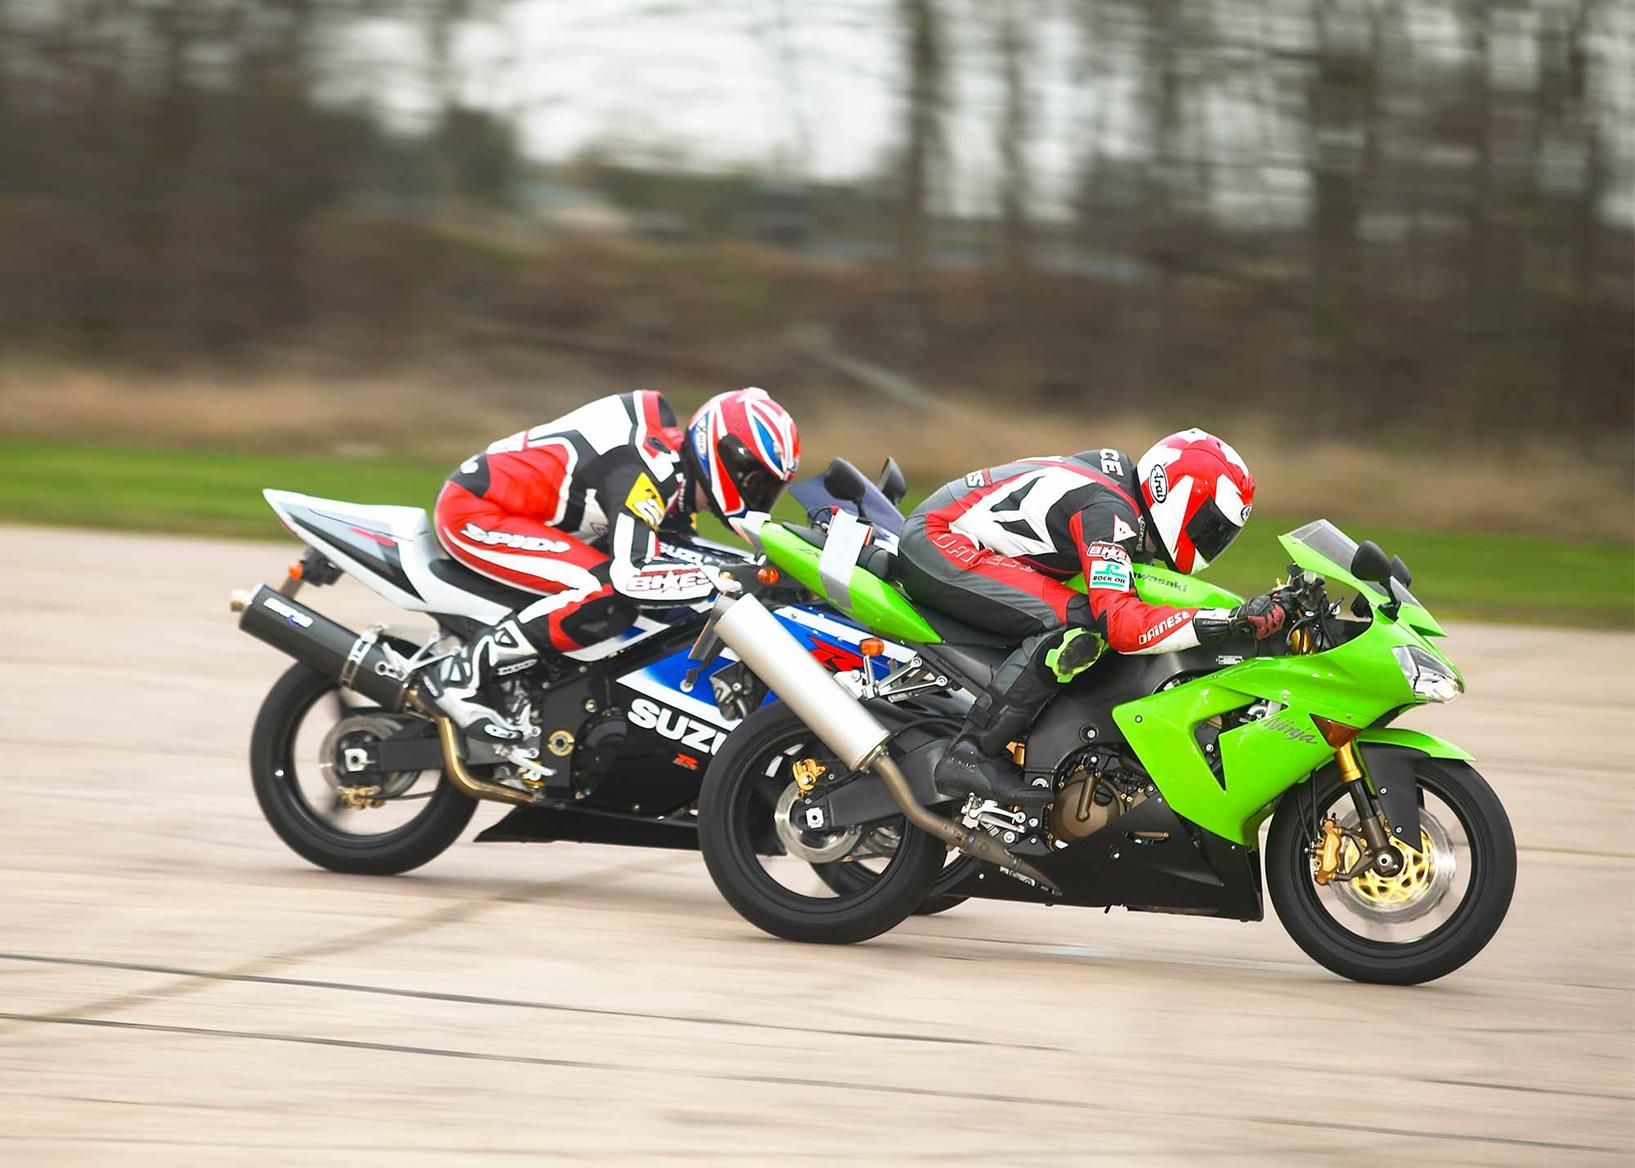 An original ZX-10 does battle with the Suzuki GSX-R1000